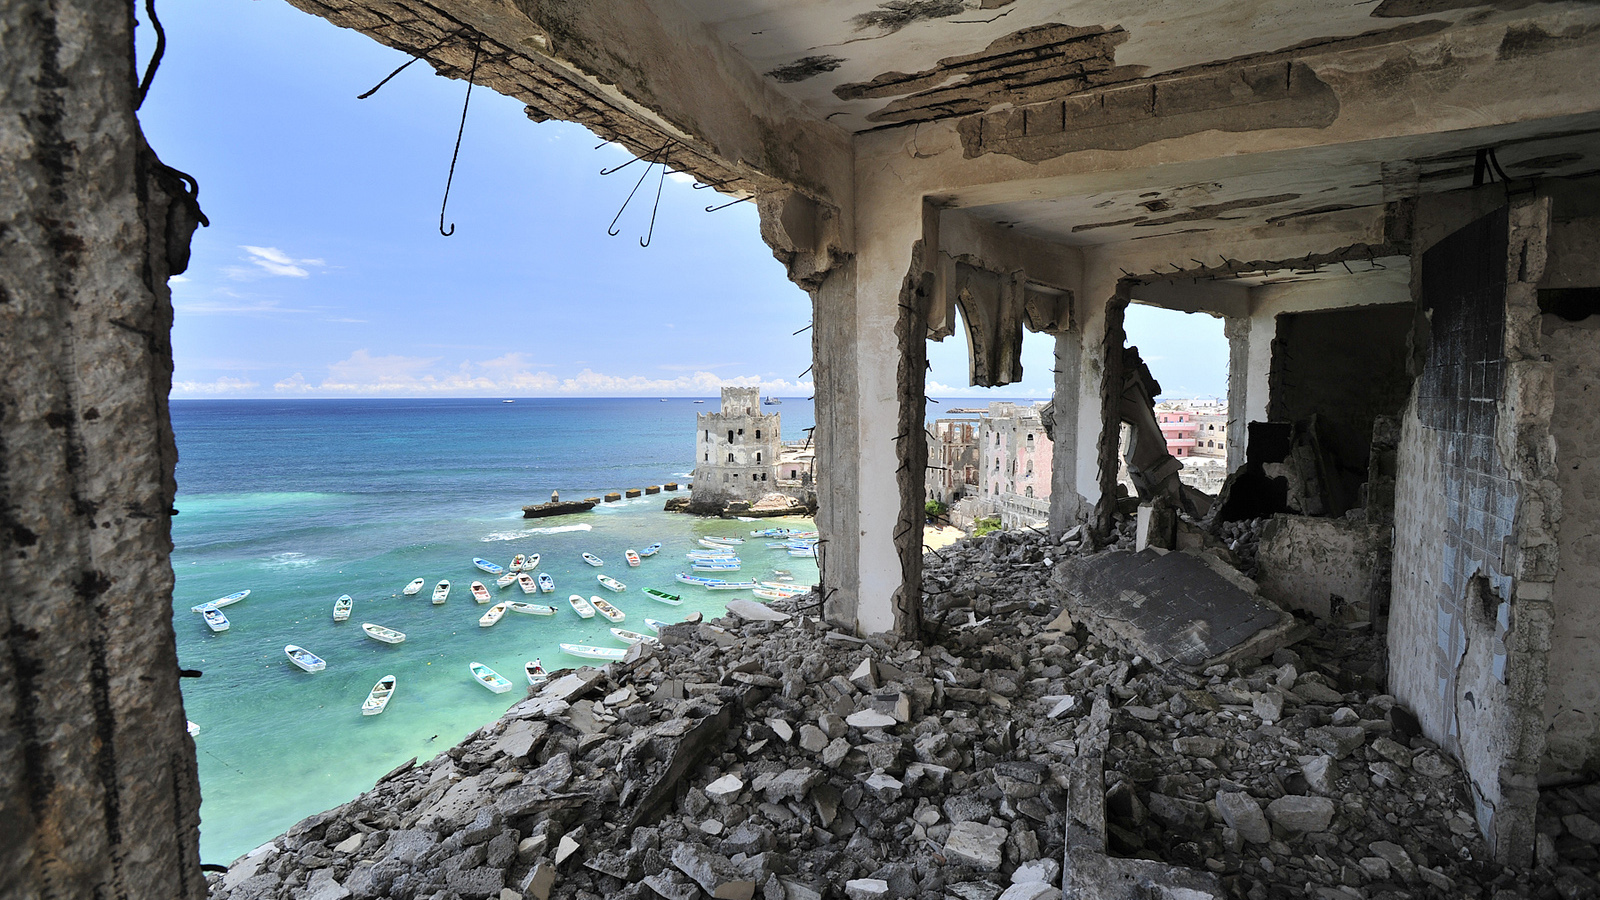 Once one of Mogadishu's most luxurious hotels, the Al-Uruba lays in ruins after two decades of civil war. Though building work in Mogadishu is on the rise, it may still be several years before many of the city's buildings will be restored.